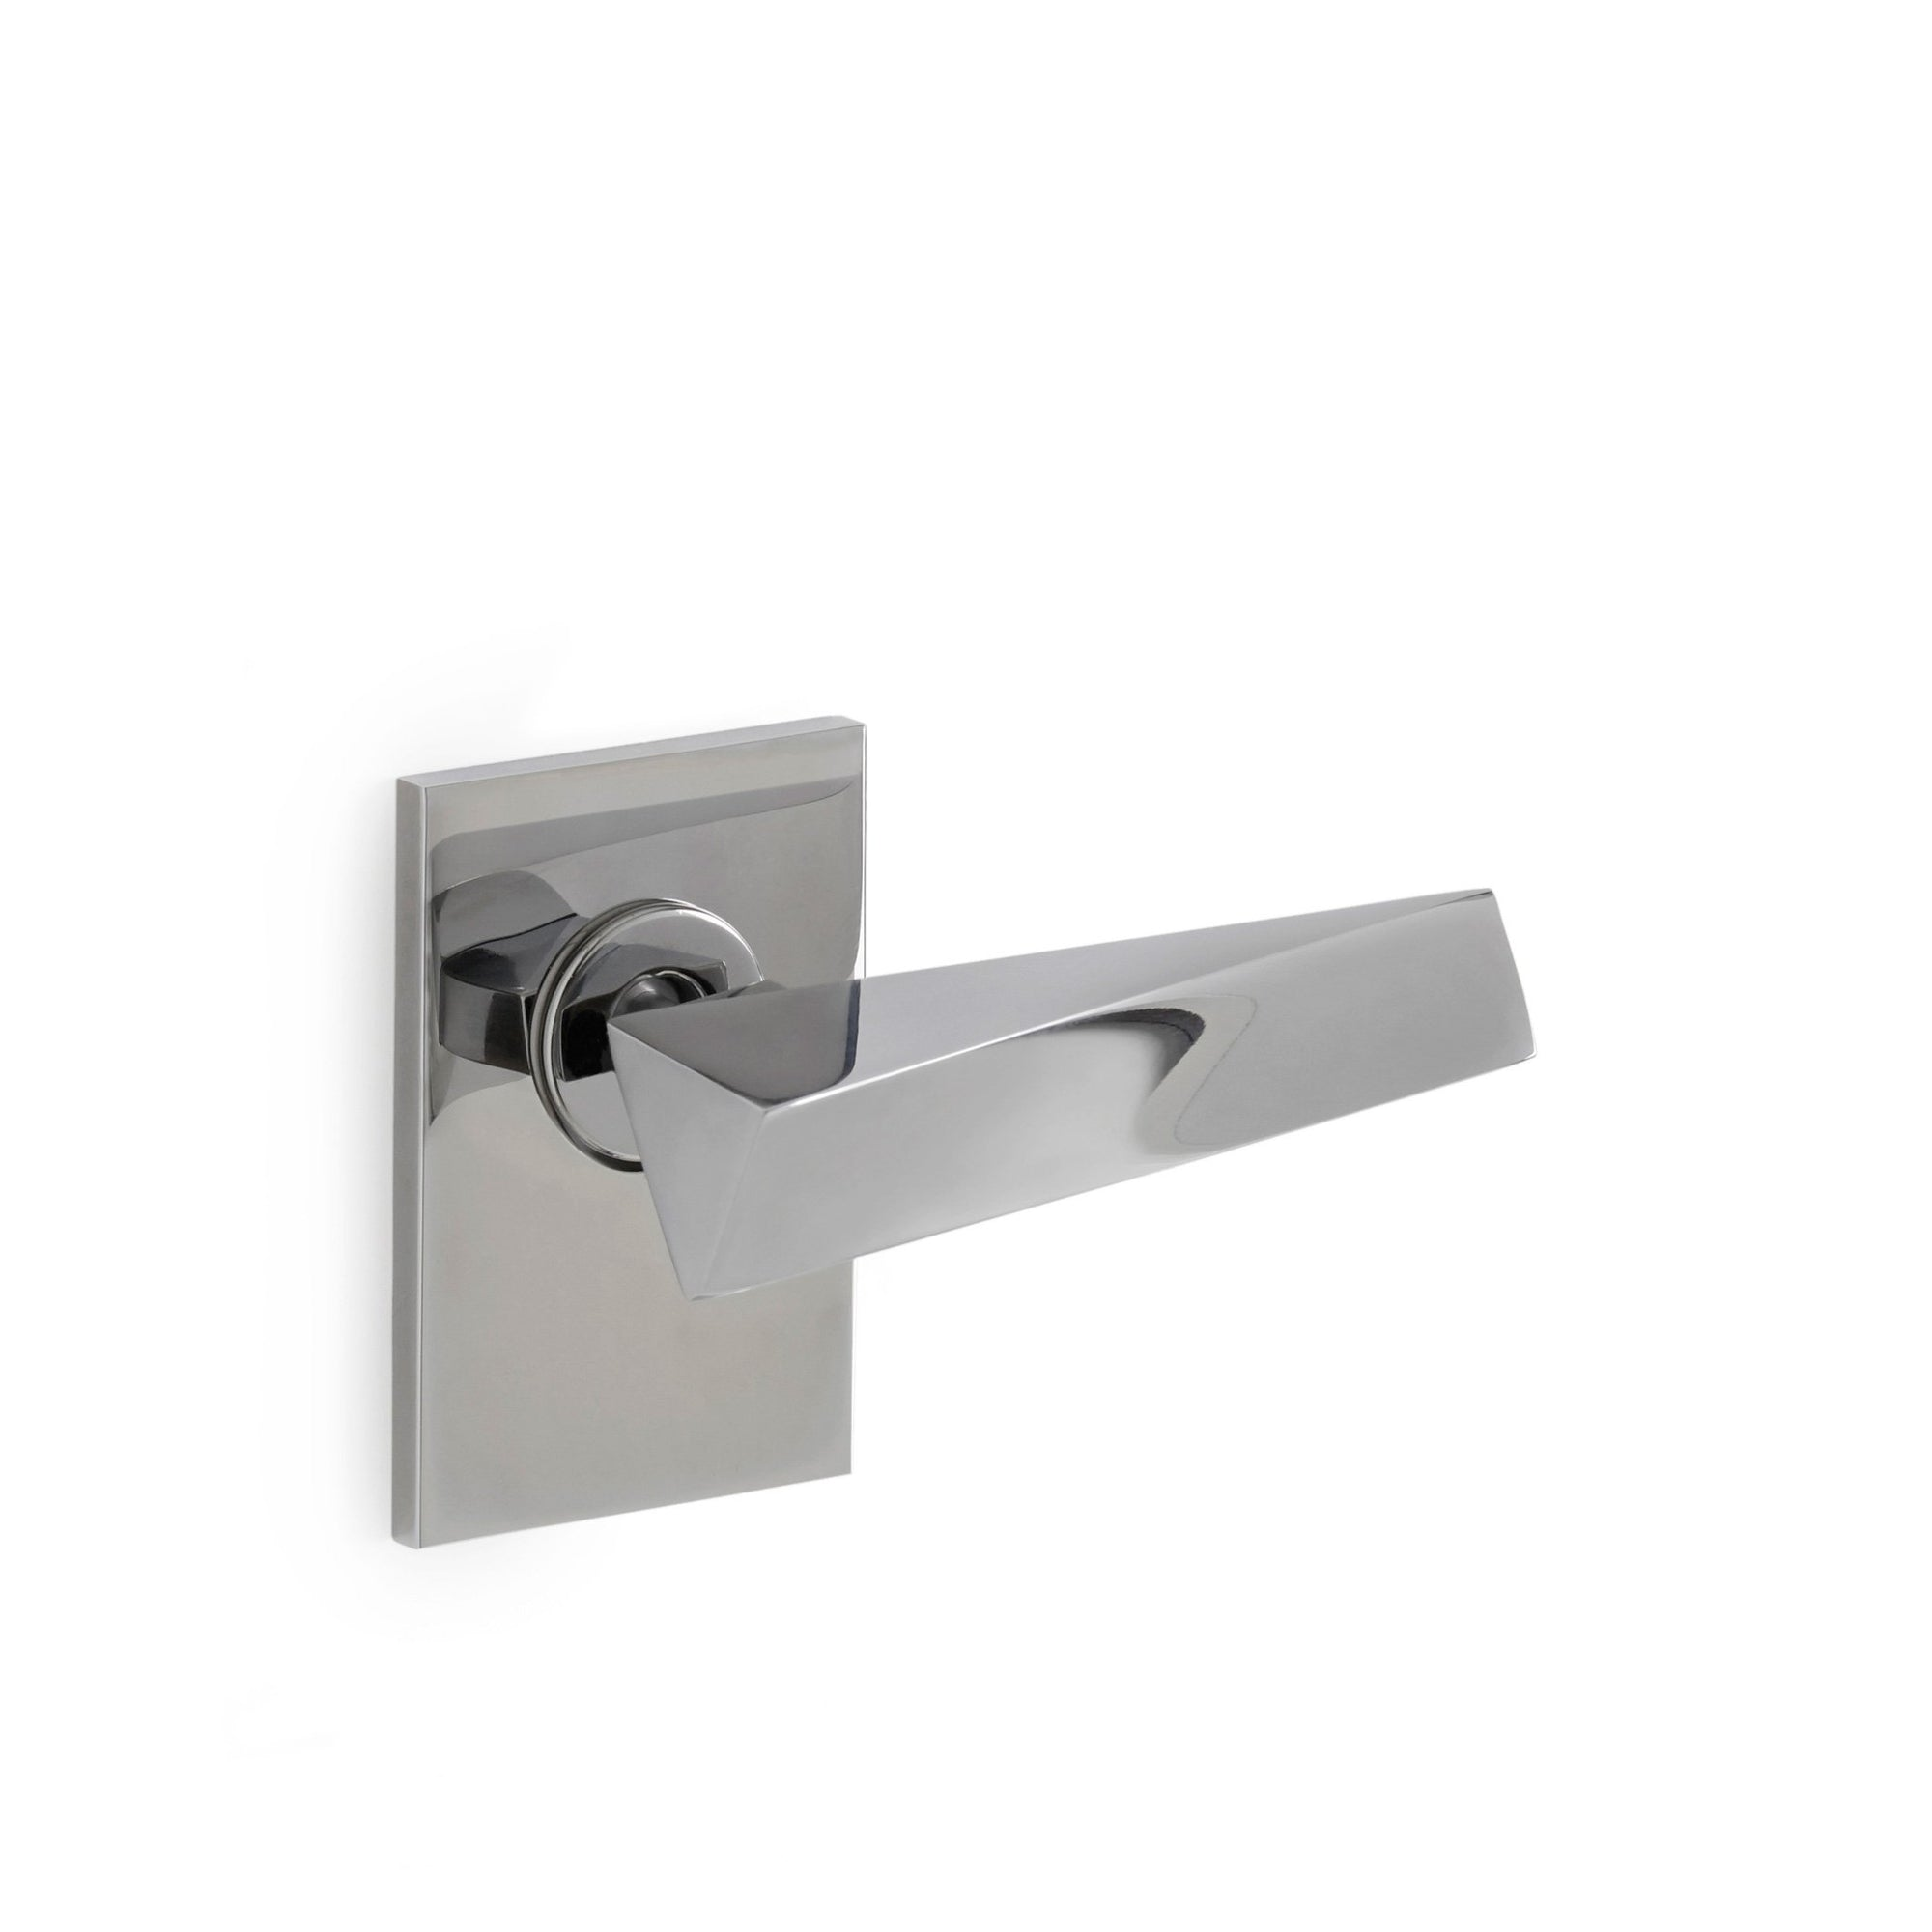 008DOR-RH-CP Sherle Wagner International Arco Door Lever in Polished Chrome metal finish